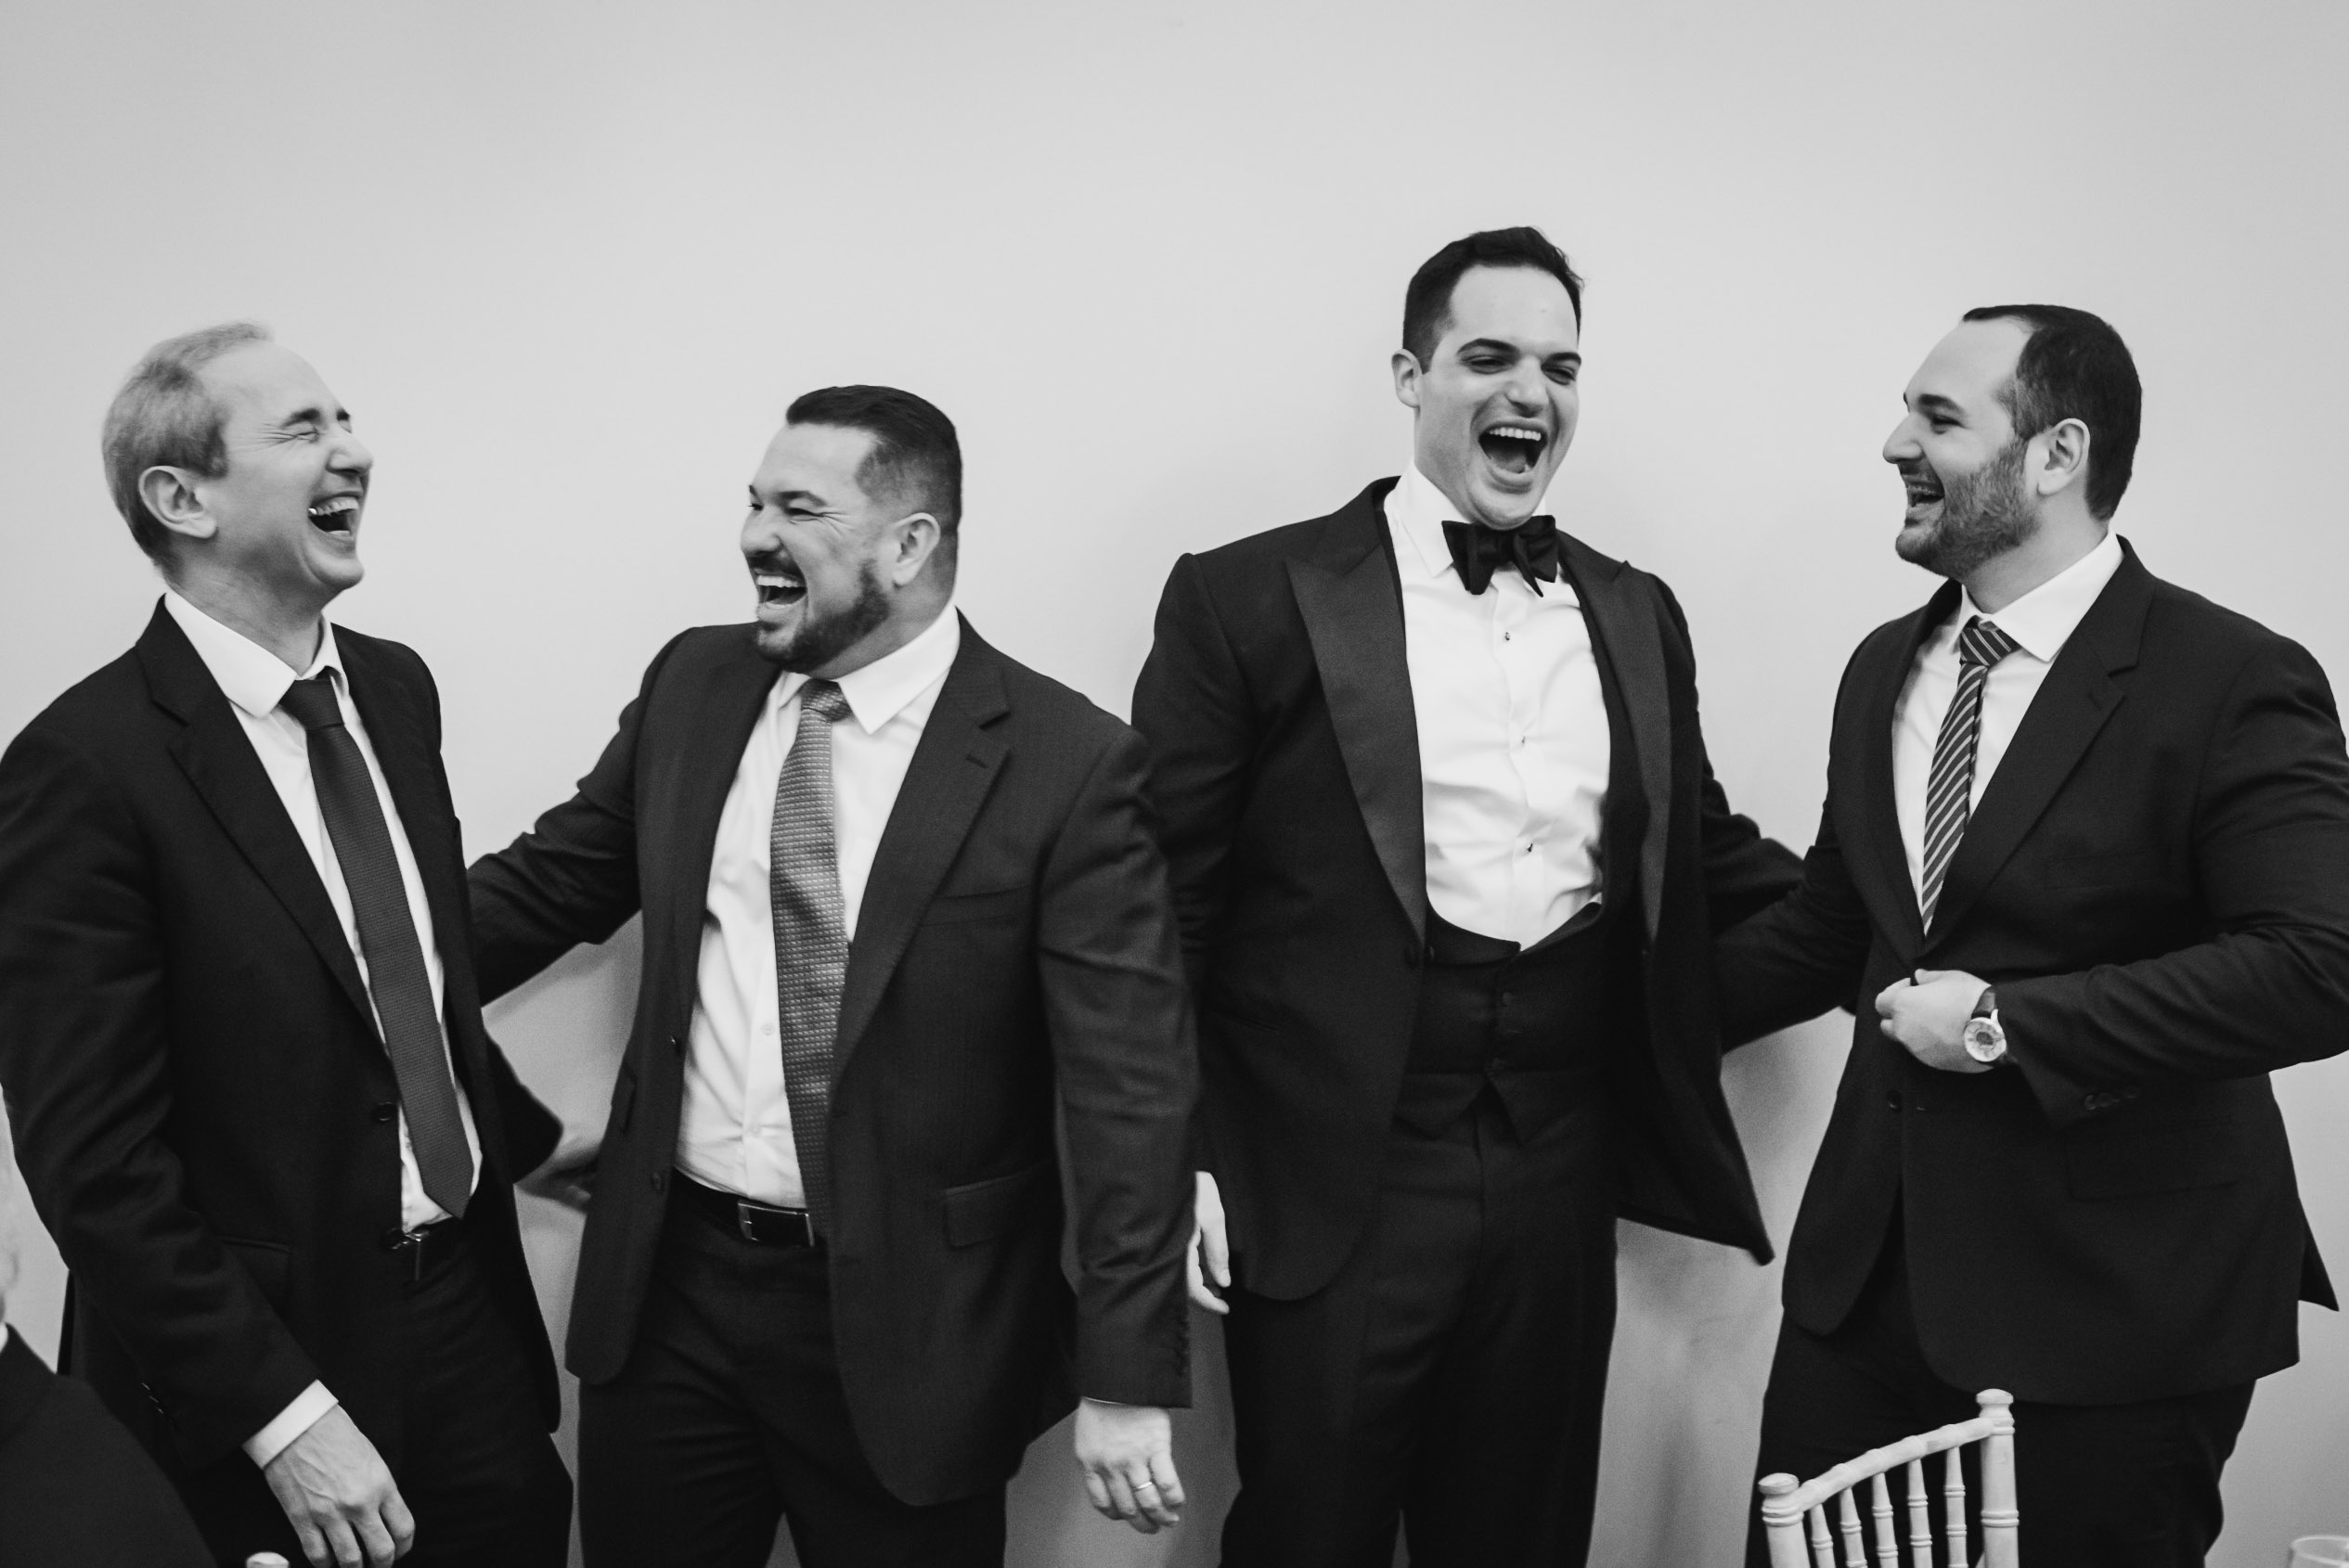 carine bea photography, boys having fun wedding Carlton House Terrace London